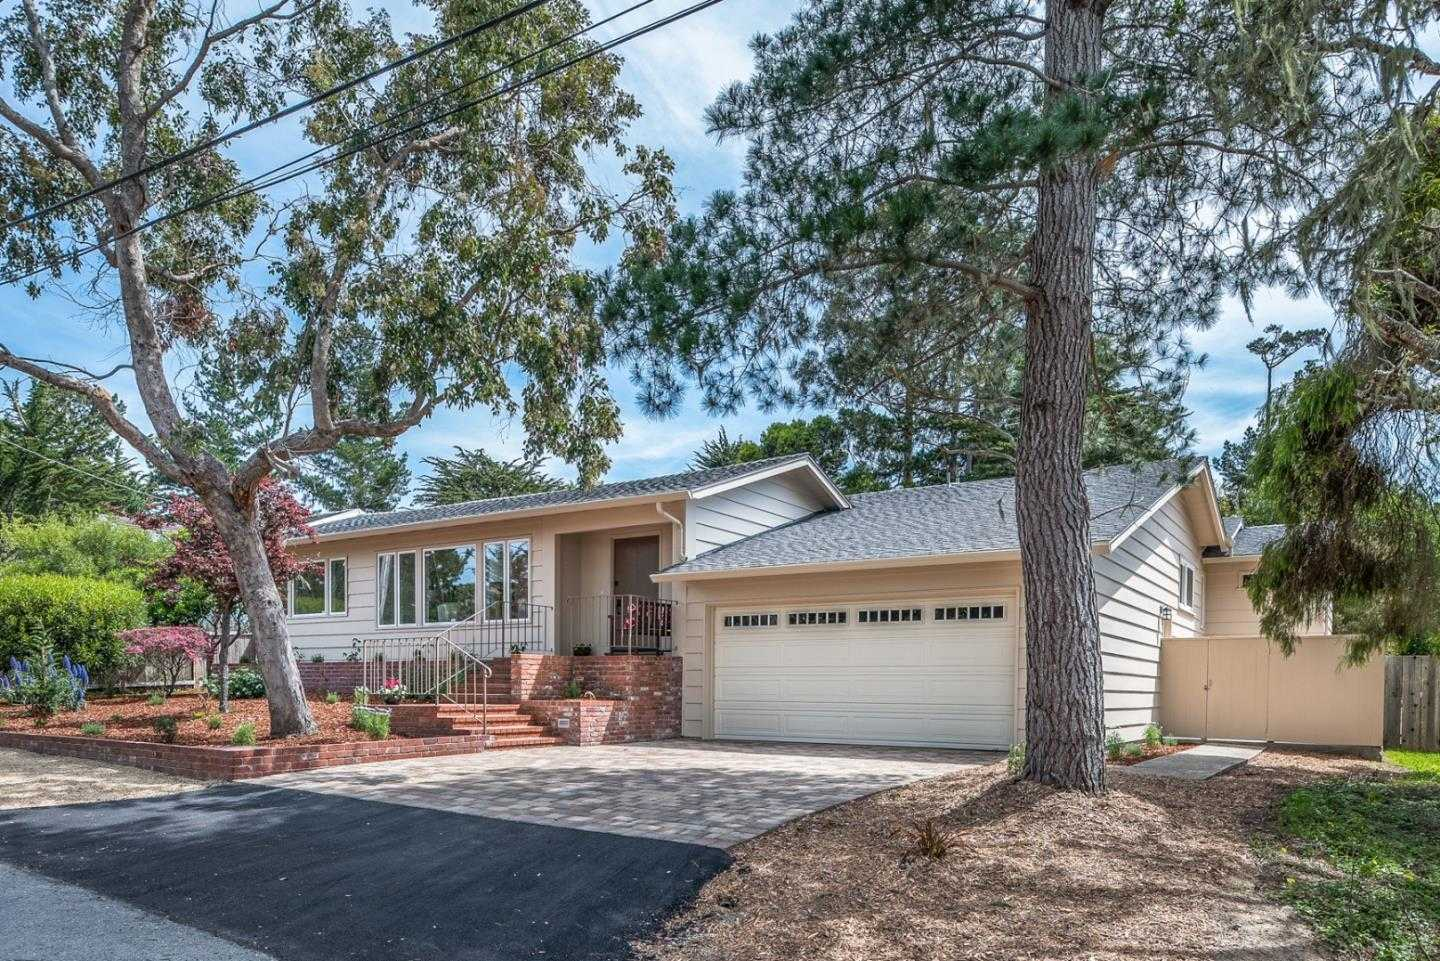 $1,795,000 - 3Br/3Ba -  for Sale in Pebble Beach